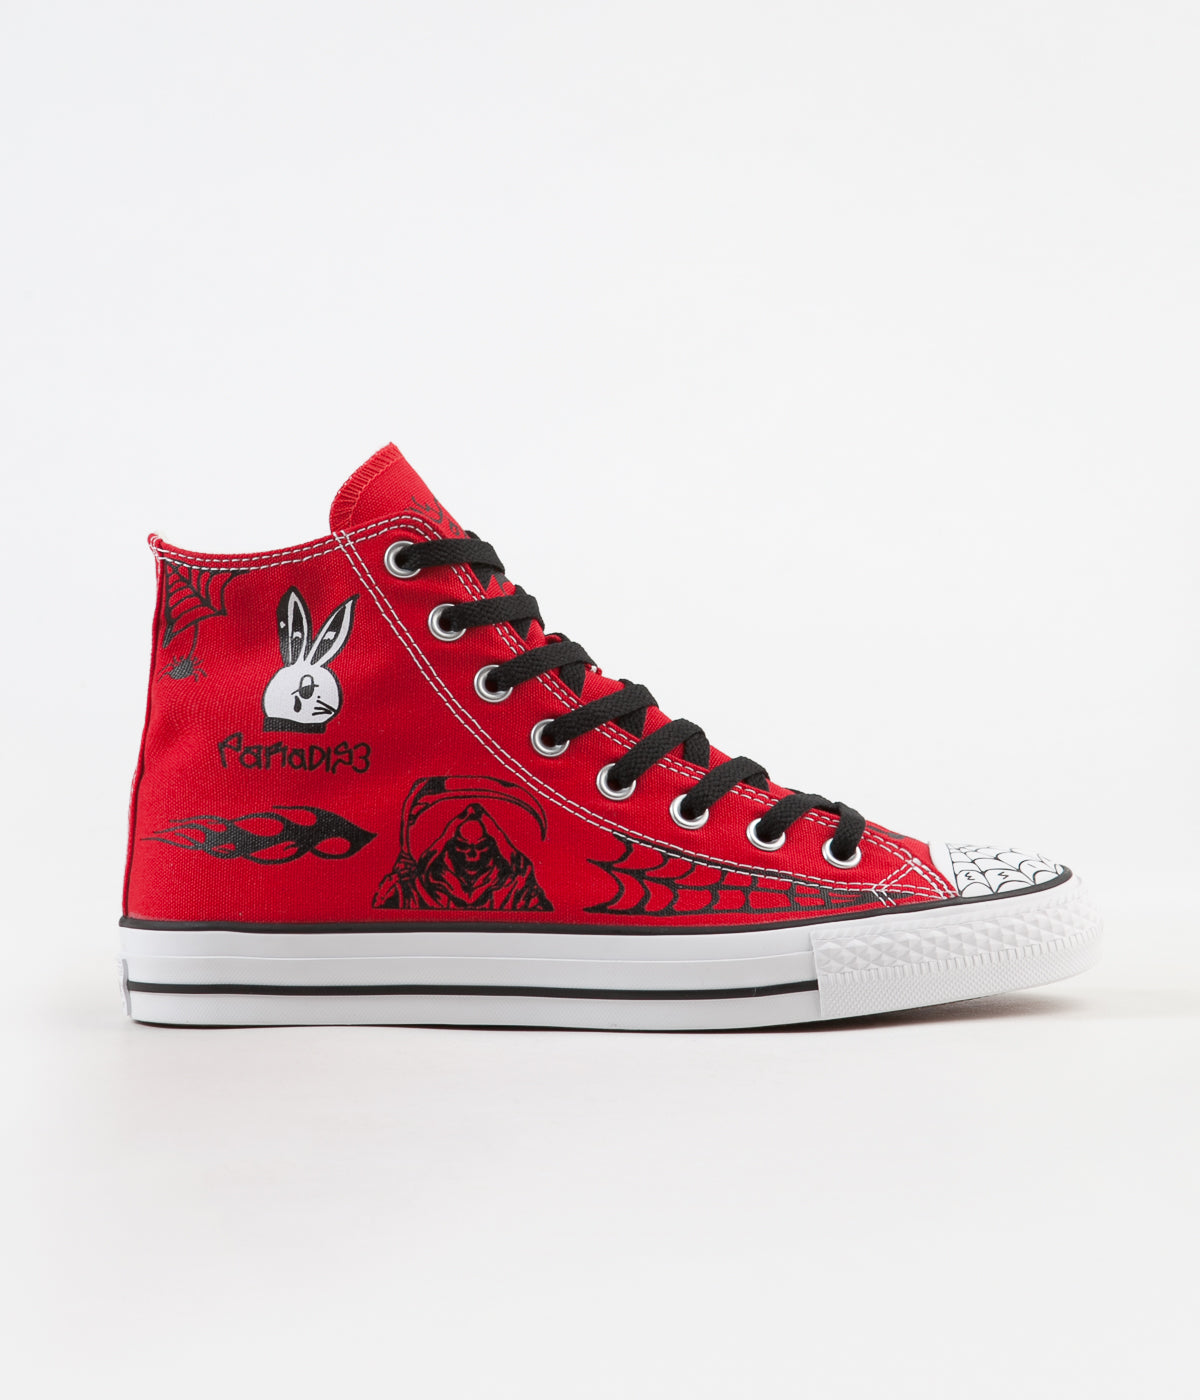 dd7288611bb0 Converse CTAS Pro Hi Sean Pablo Shoes - Enamel Red   Black   White ...